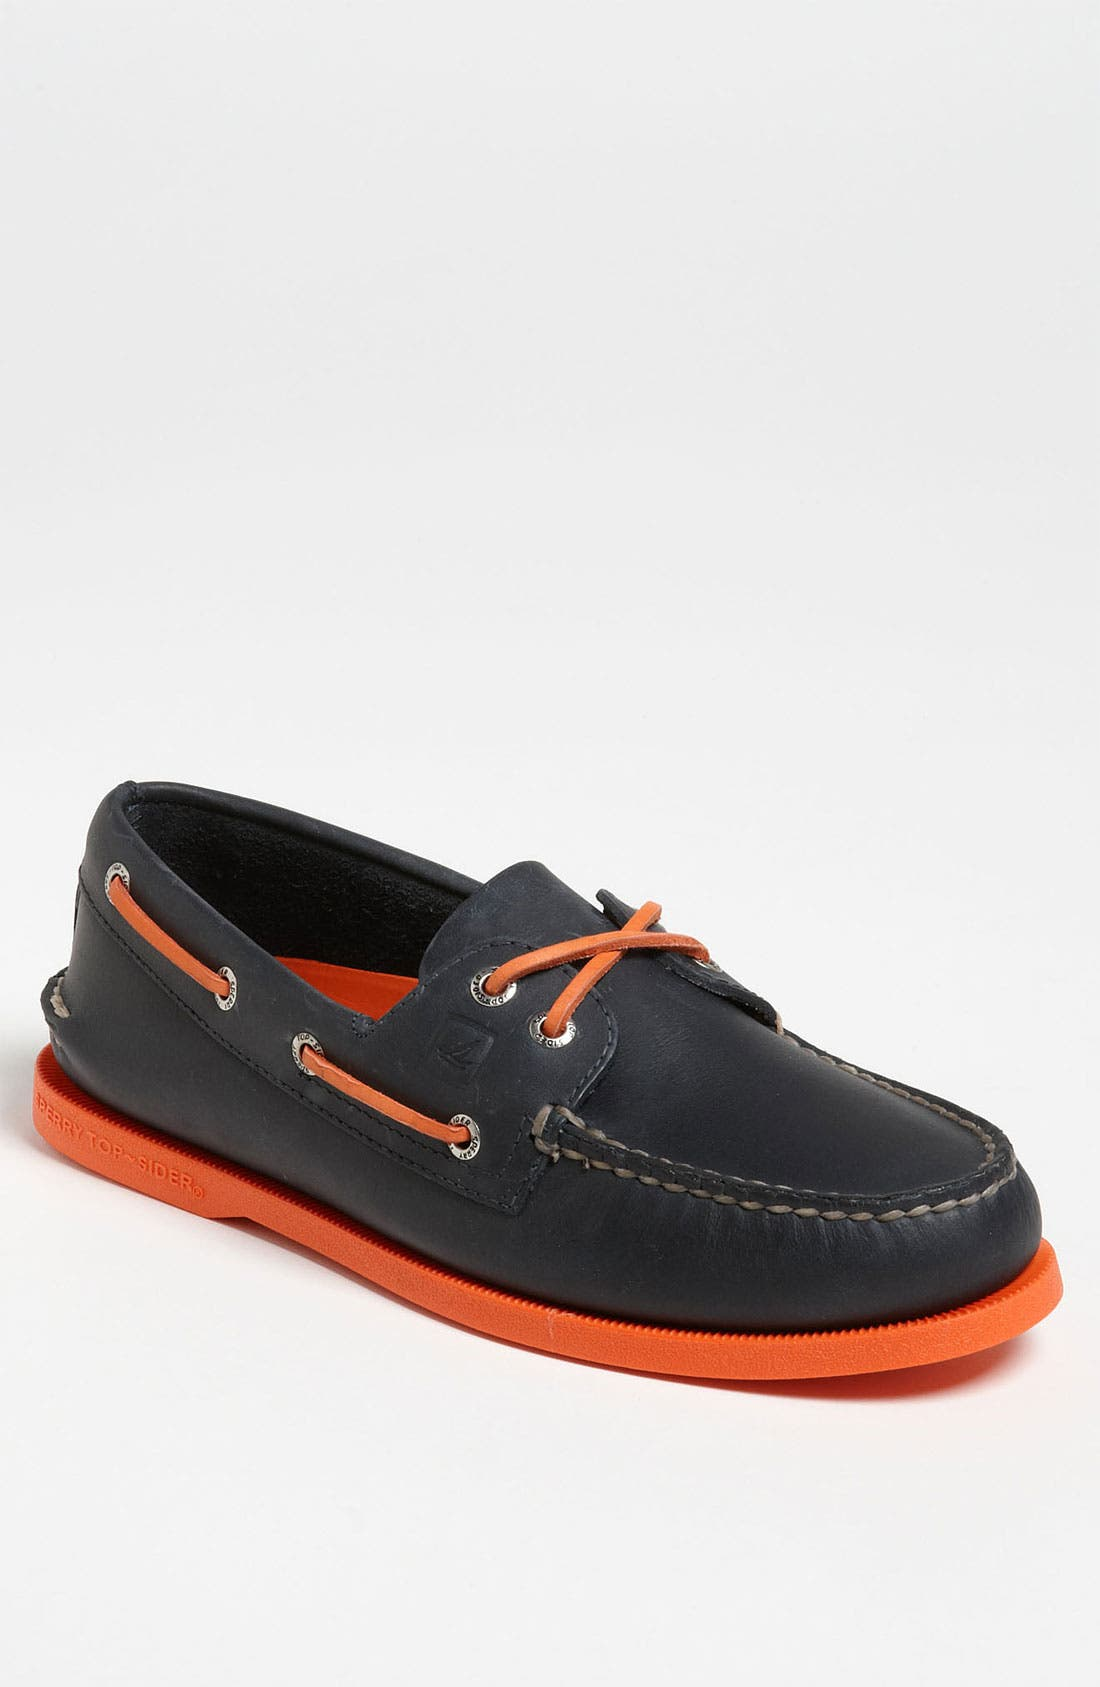 Main Image - Sperry Top-Sider® 'Authentic Original 2-Eye' Boat Shoe (Regular Retail Price: $89.95)